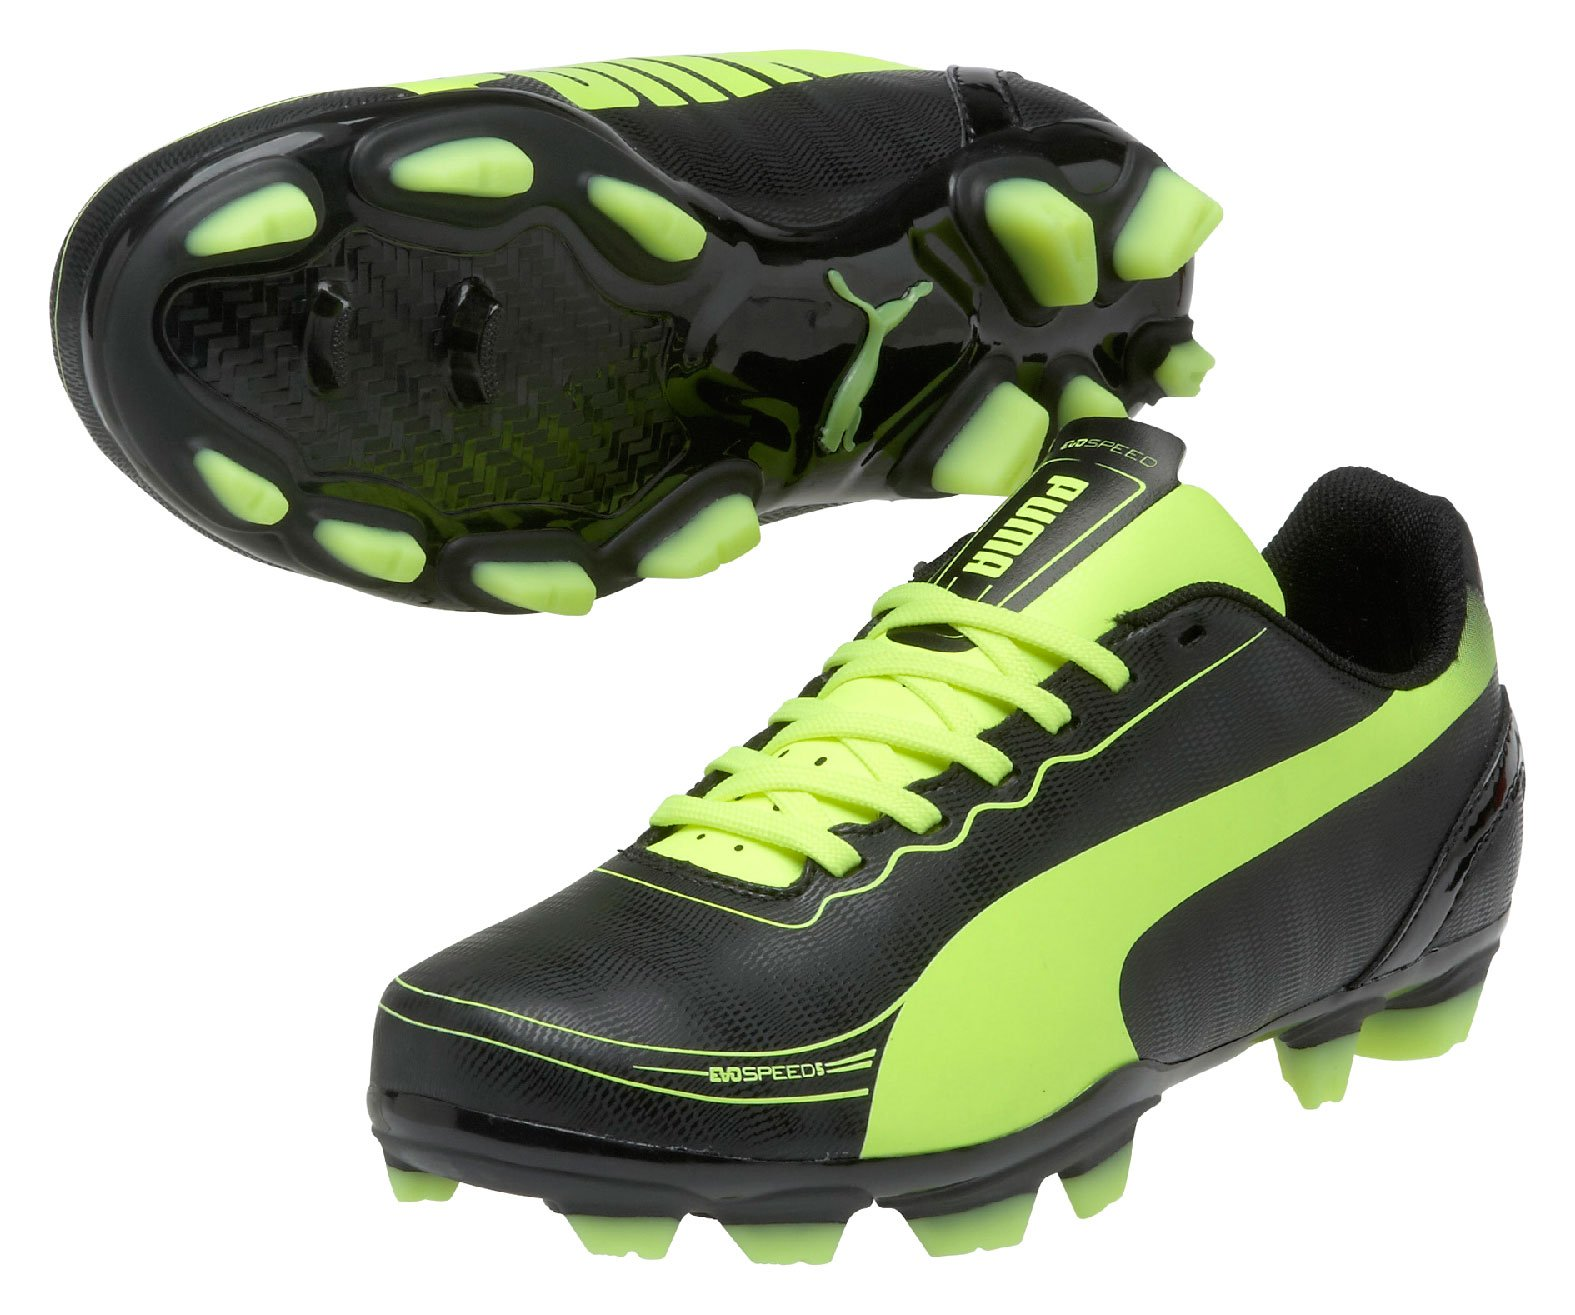 Puma evospeed 5.2 fg junior fra Puma på billigsport24